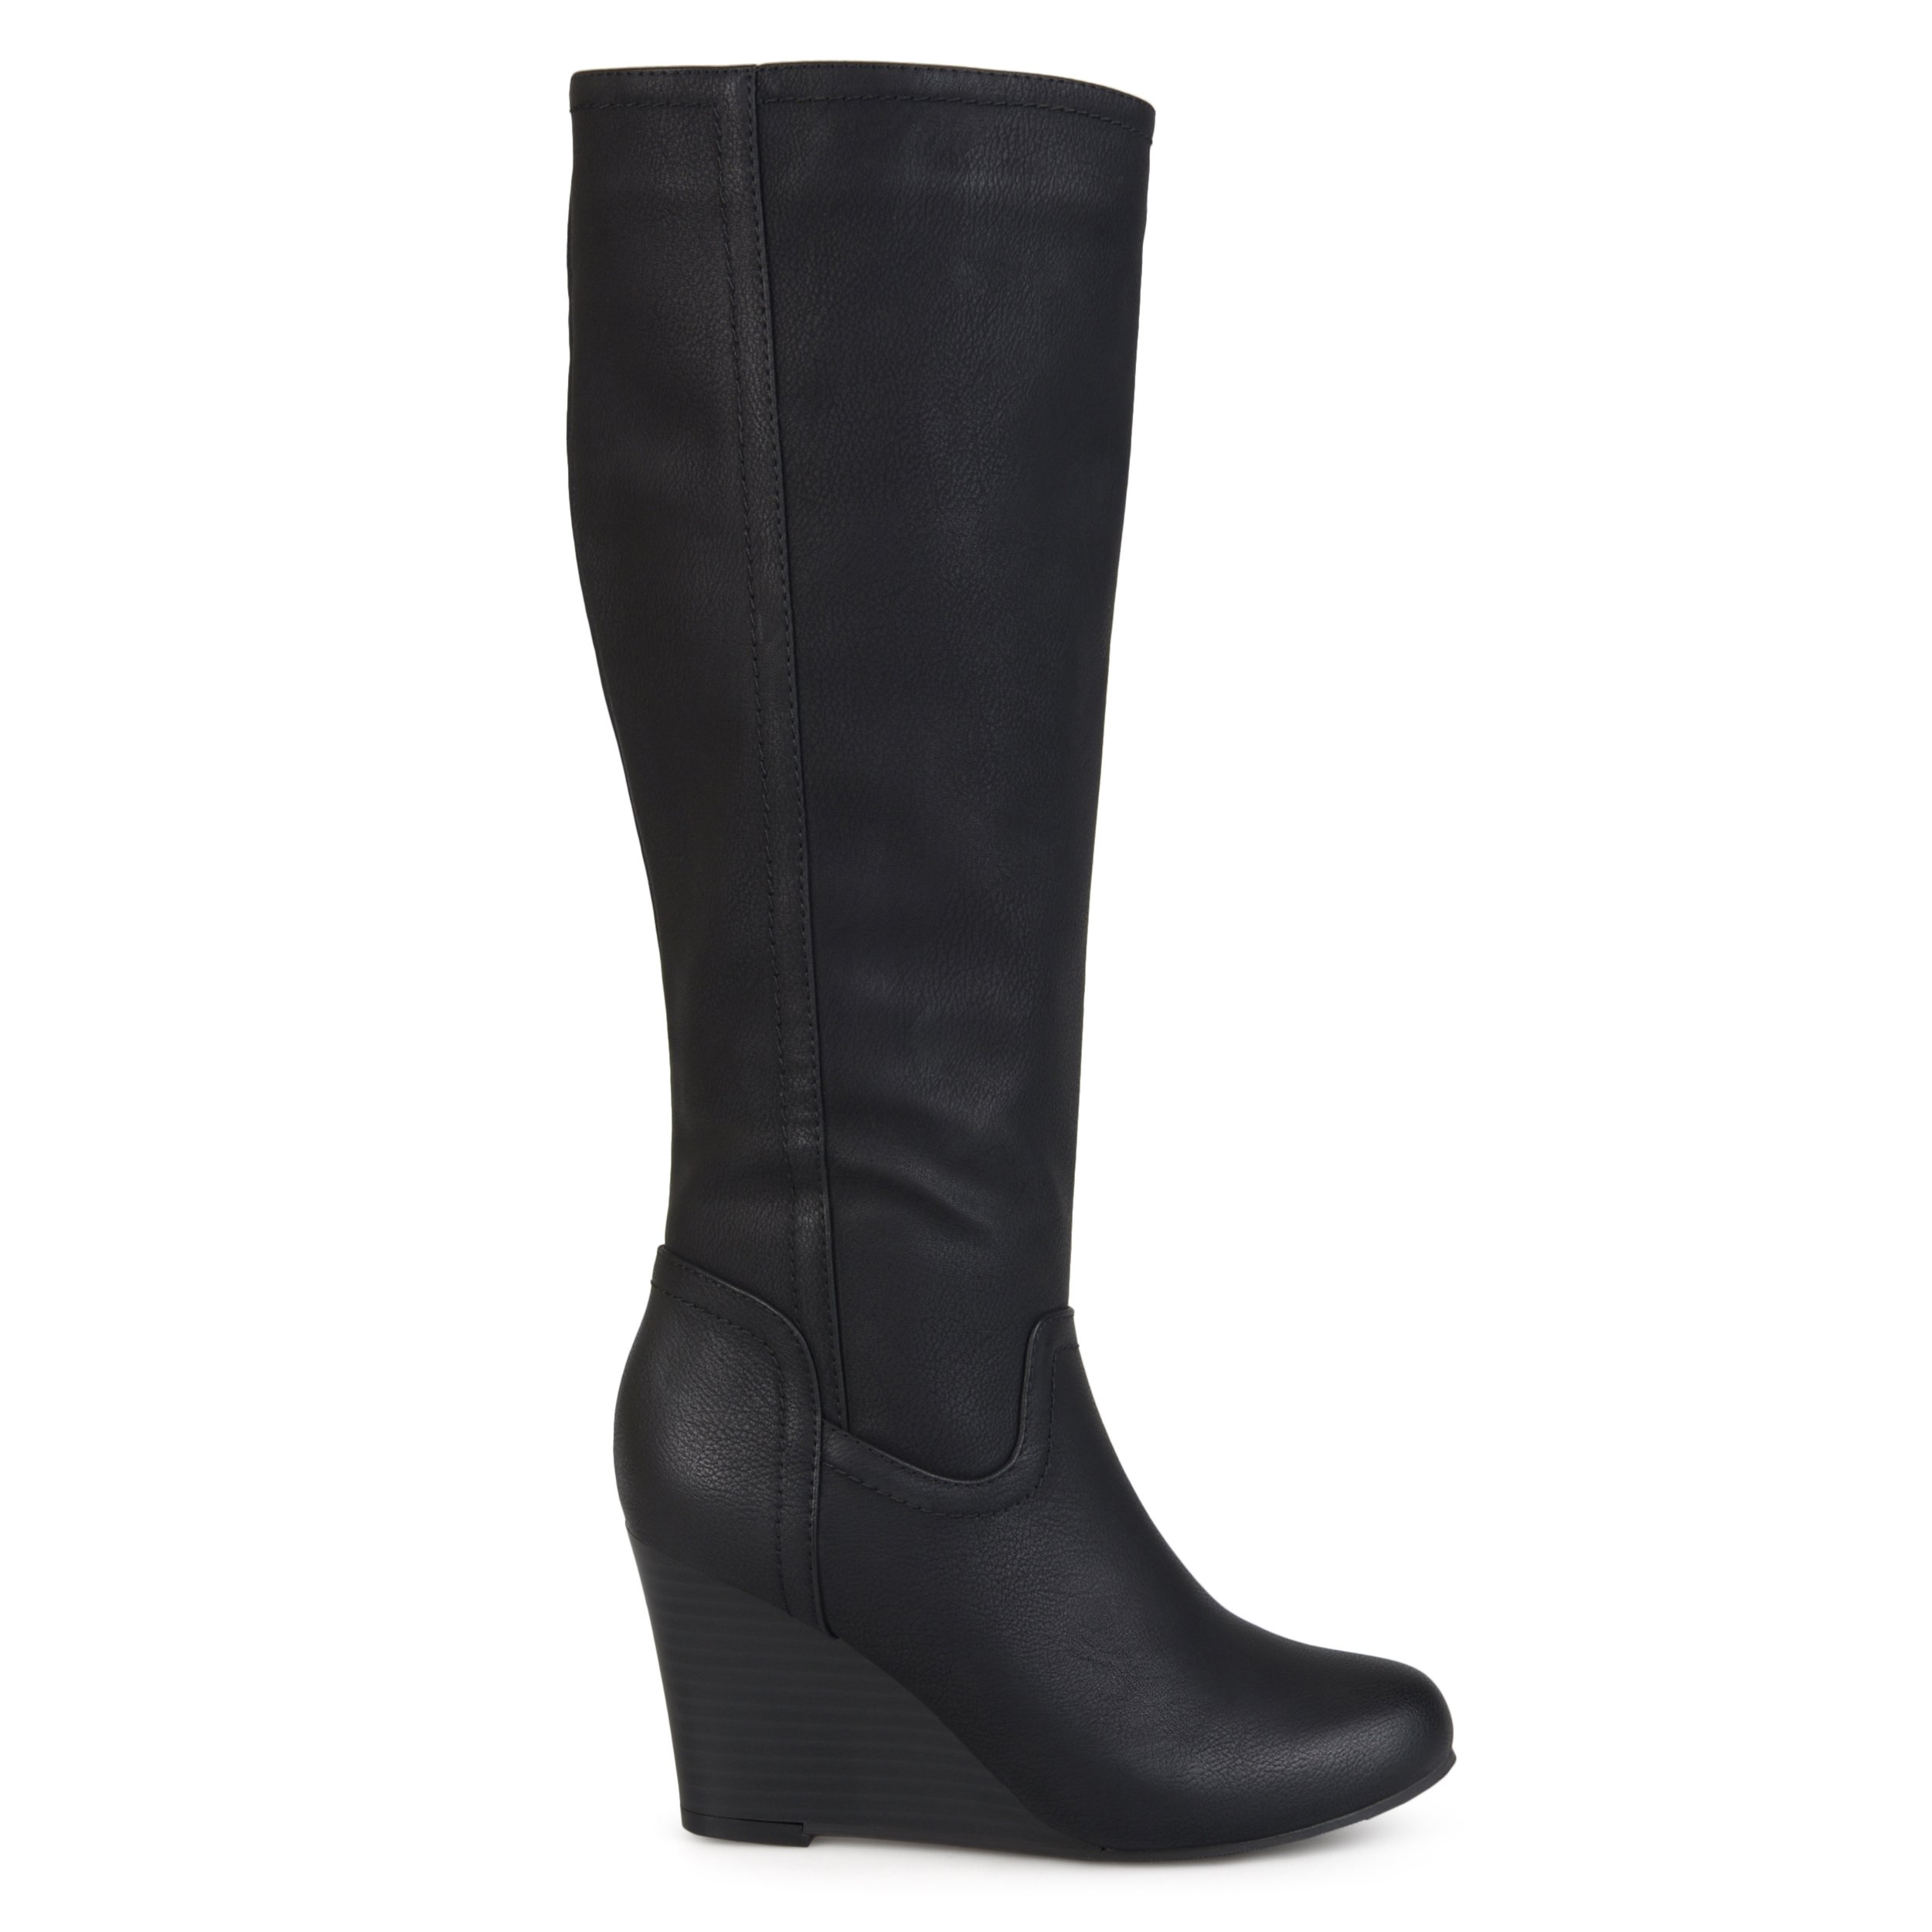 Brinley Co Womens Regular and Wide Calf Round Toe Faux Leather Mid-Calf Wedge Boots Black, 9 Wide Calf US